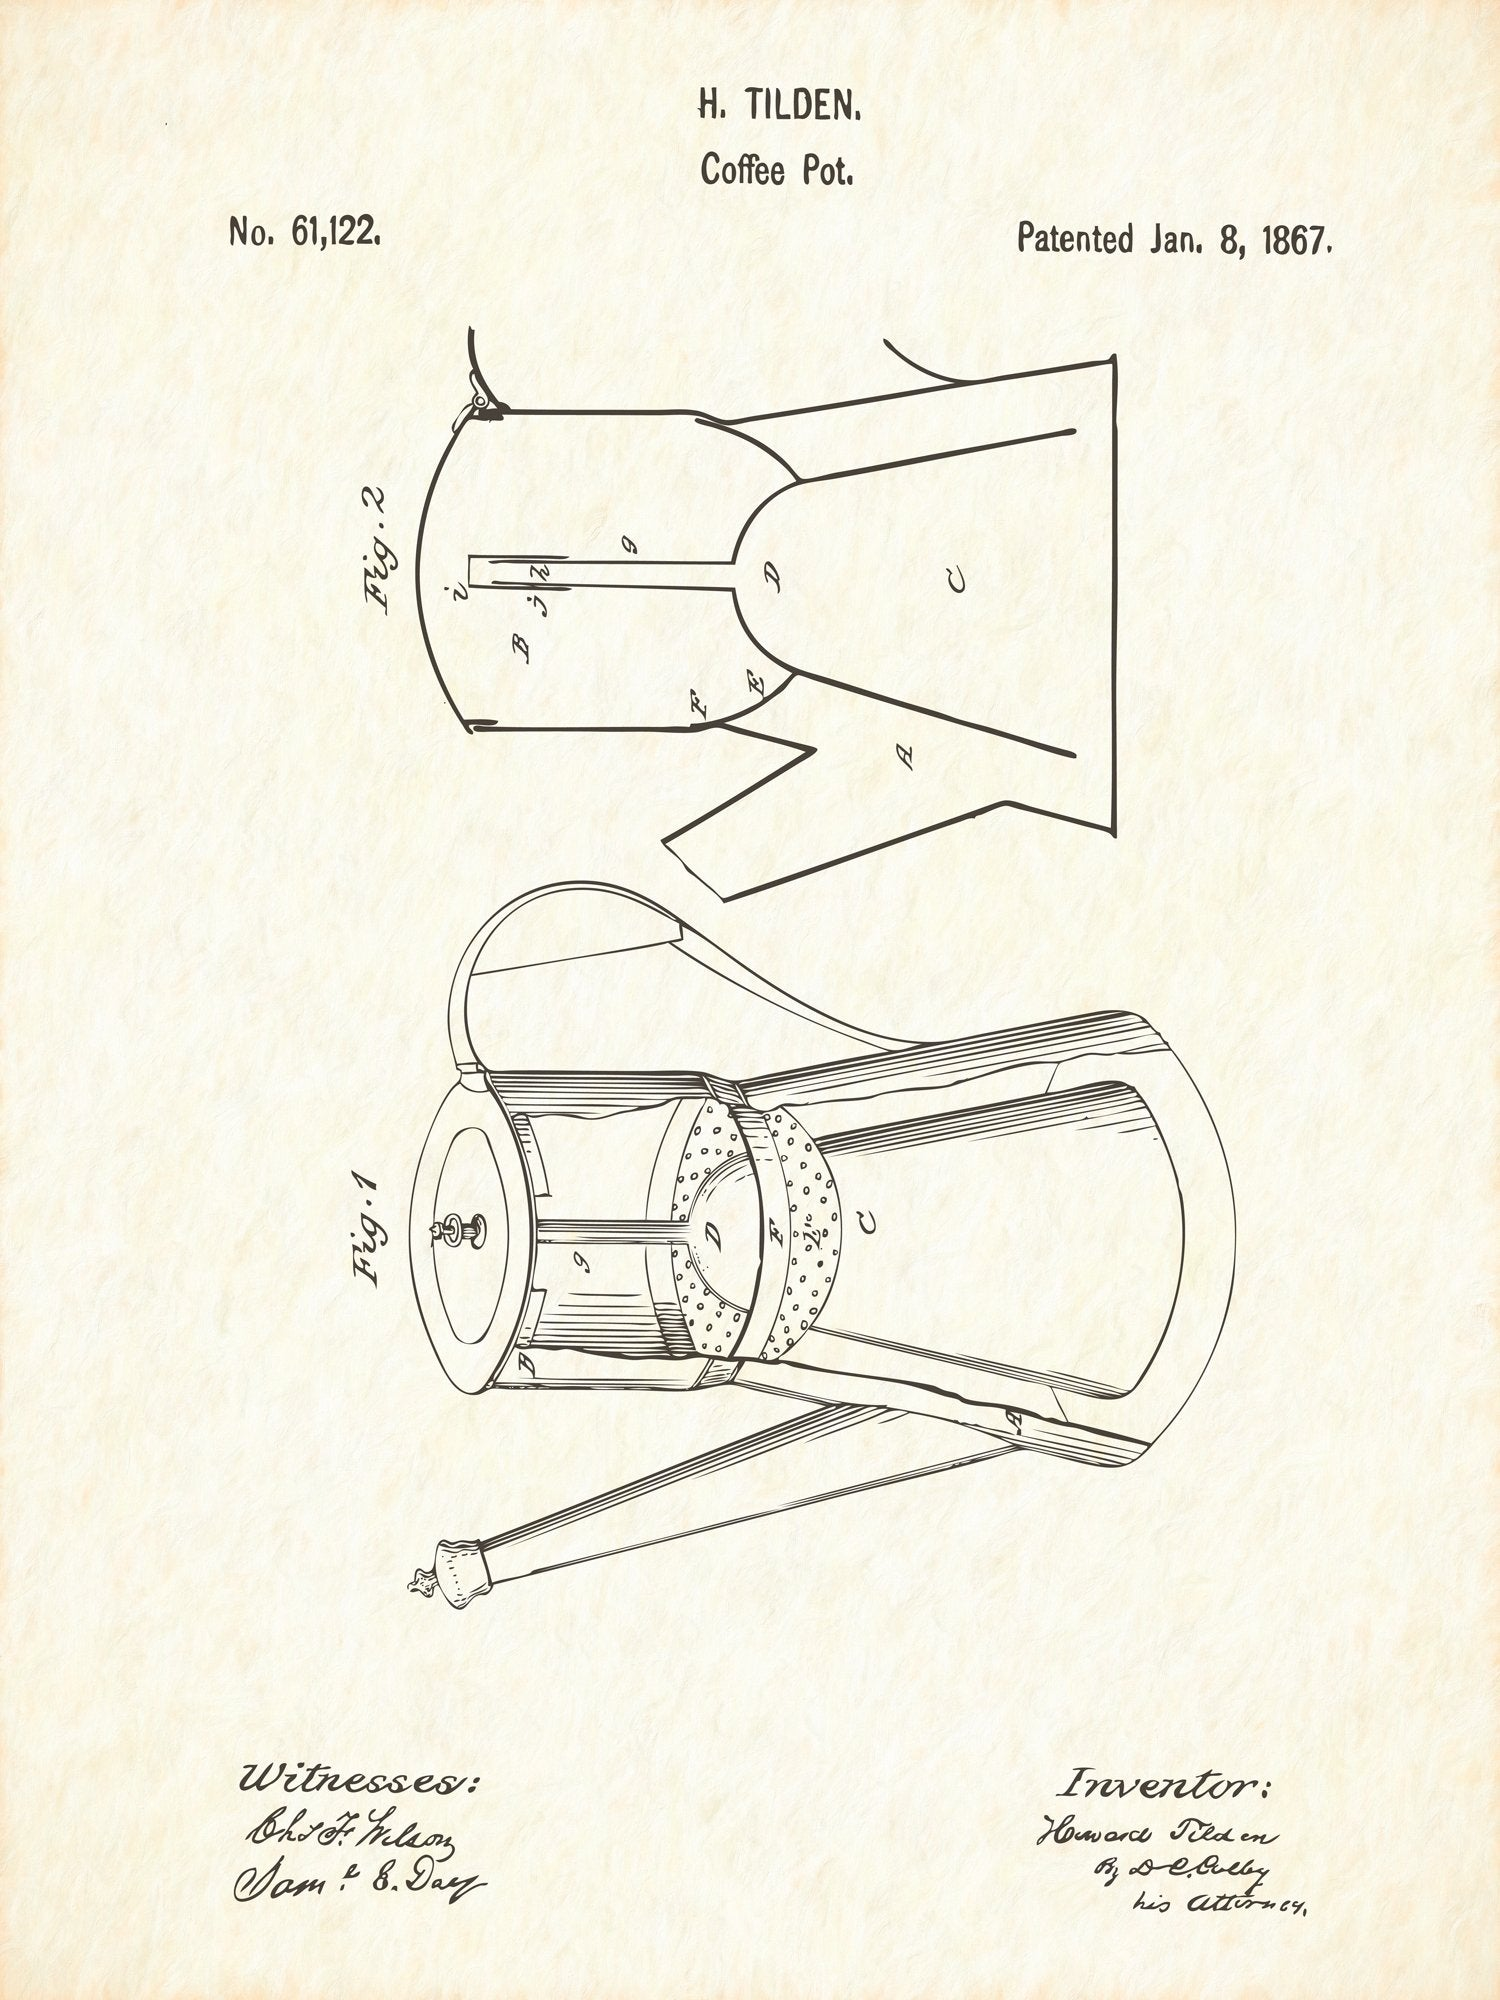 U.S. Patent No. 61122-1 Coffee Pot Reworked, Series 1